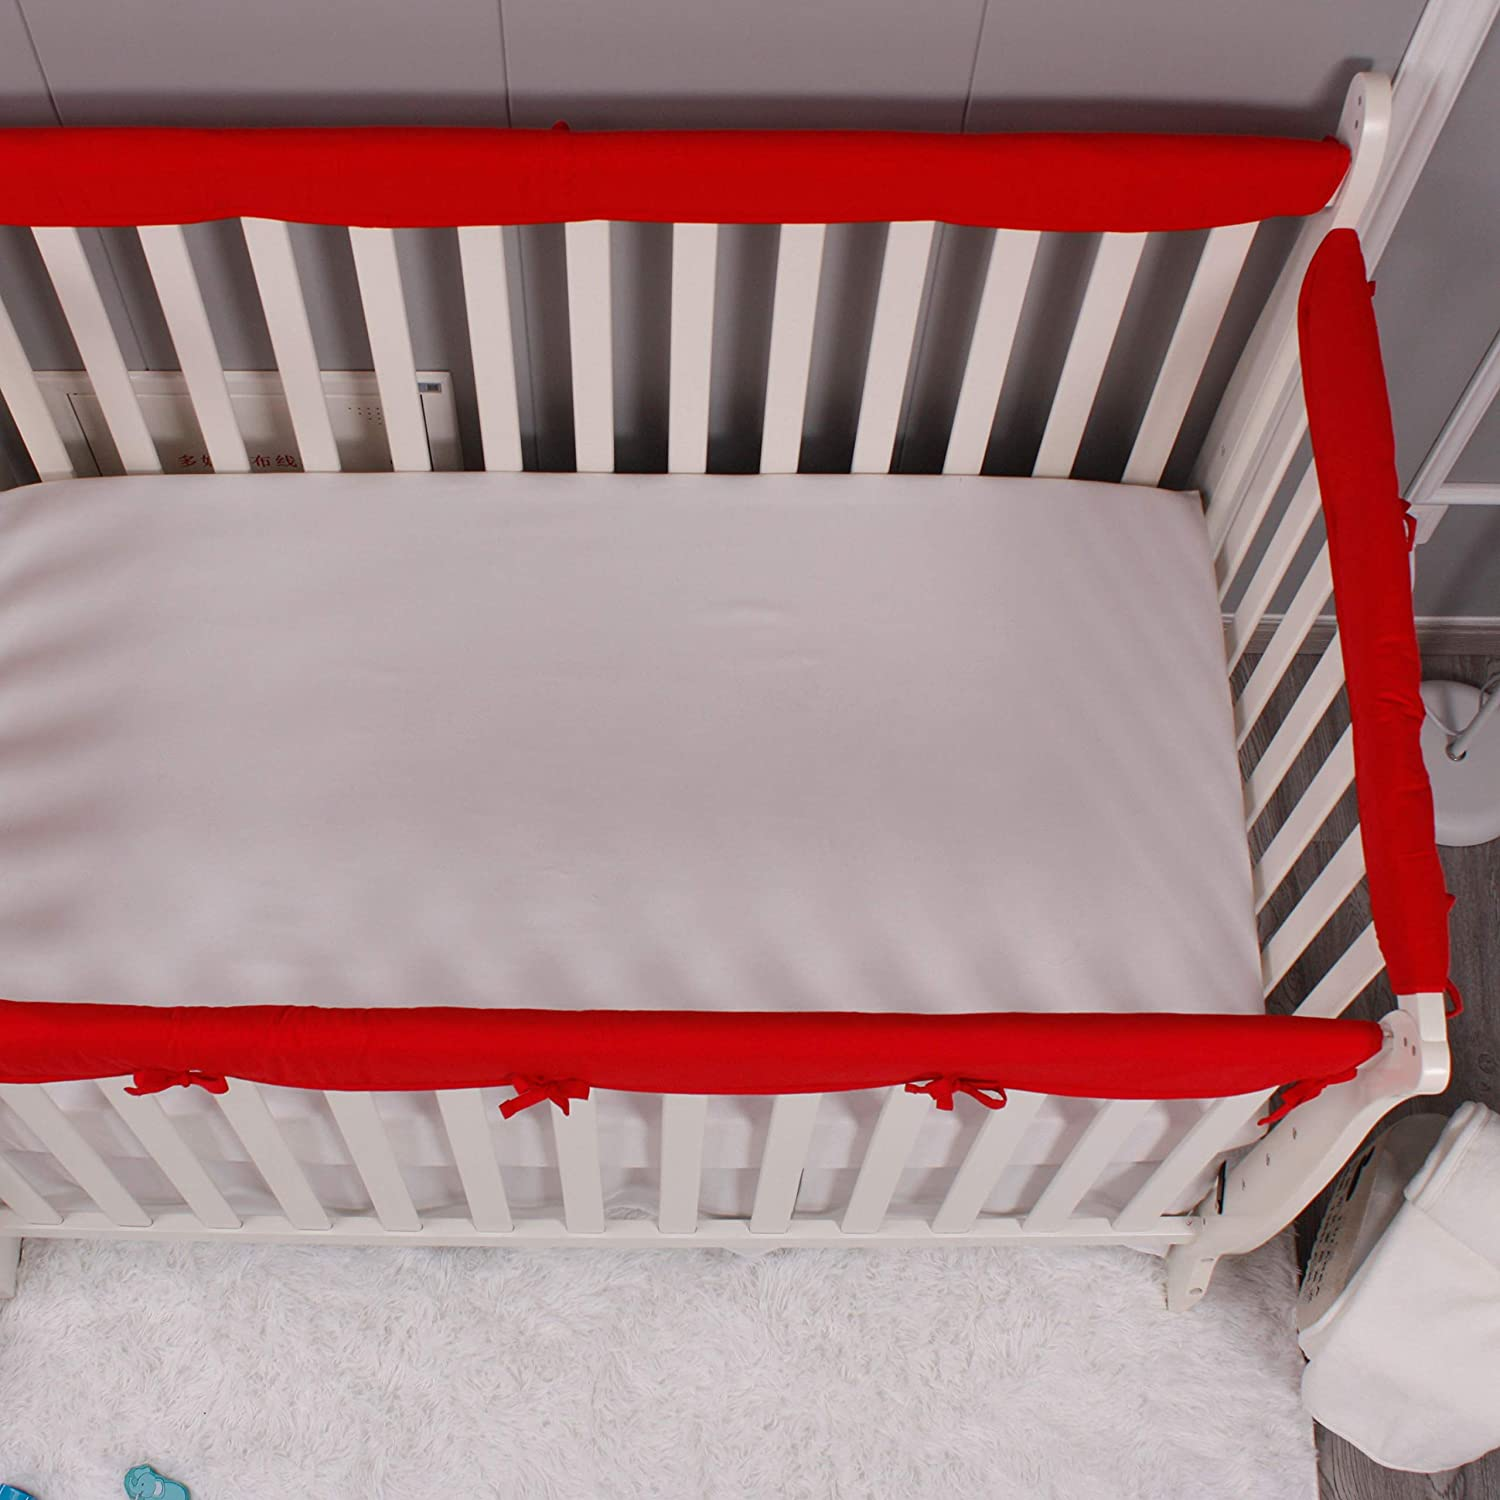 Reversible Colors Blue /& White Soft Padded Breathable Crib Teething Guard and Protector for Baby Boys Girls Belsden 4 Pack Safe Crib Rail Cover Set for Entire Crib Rails